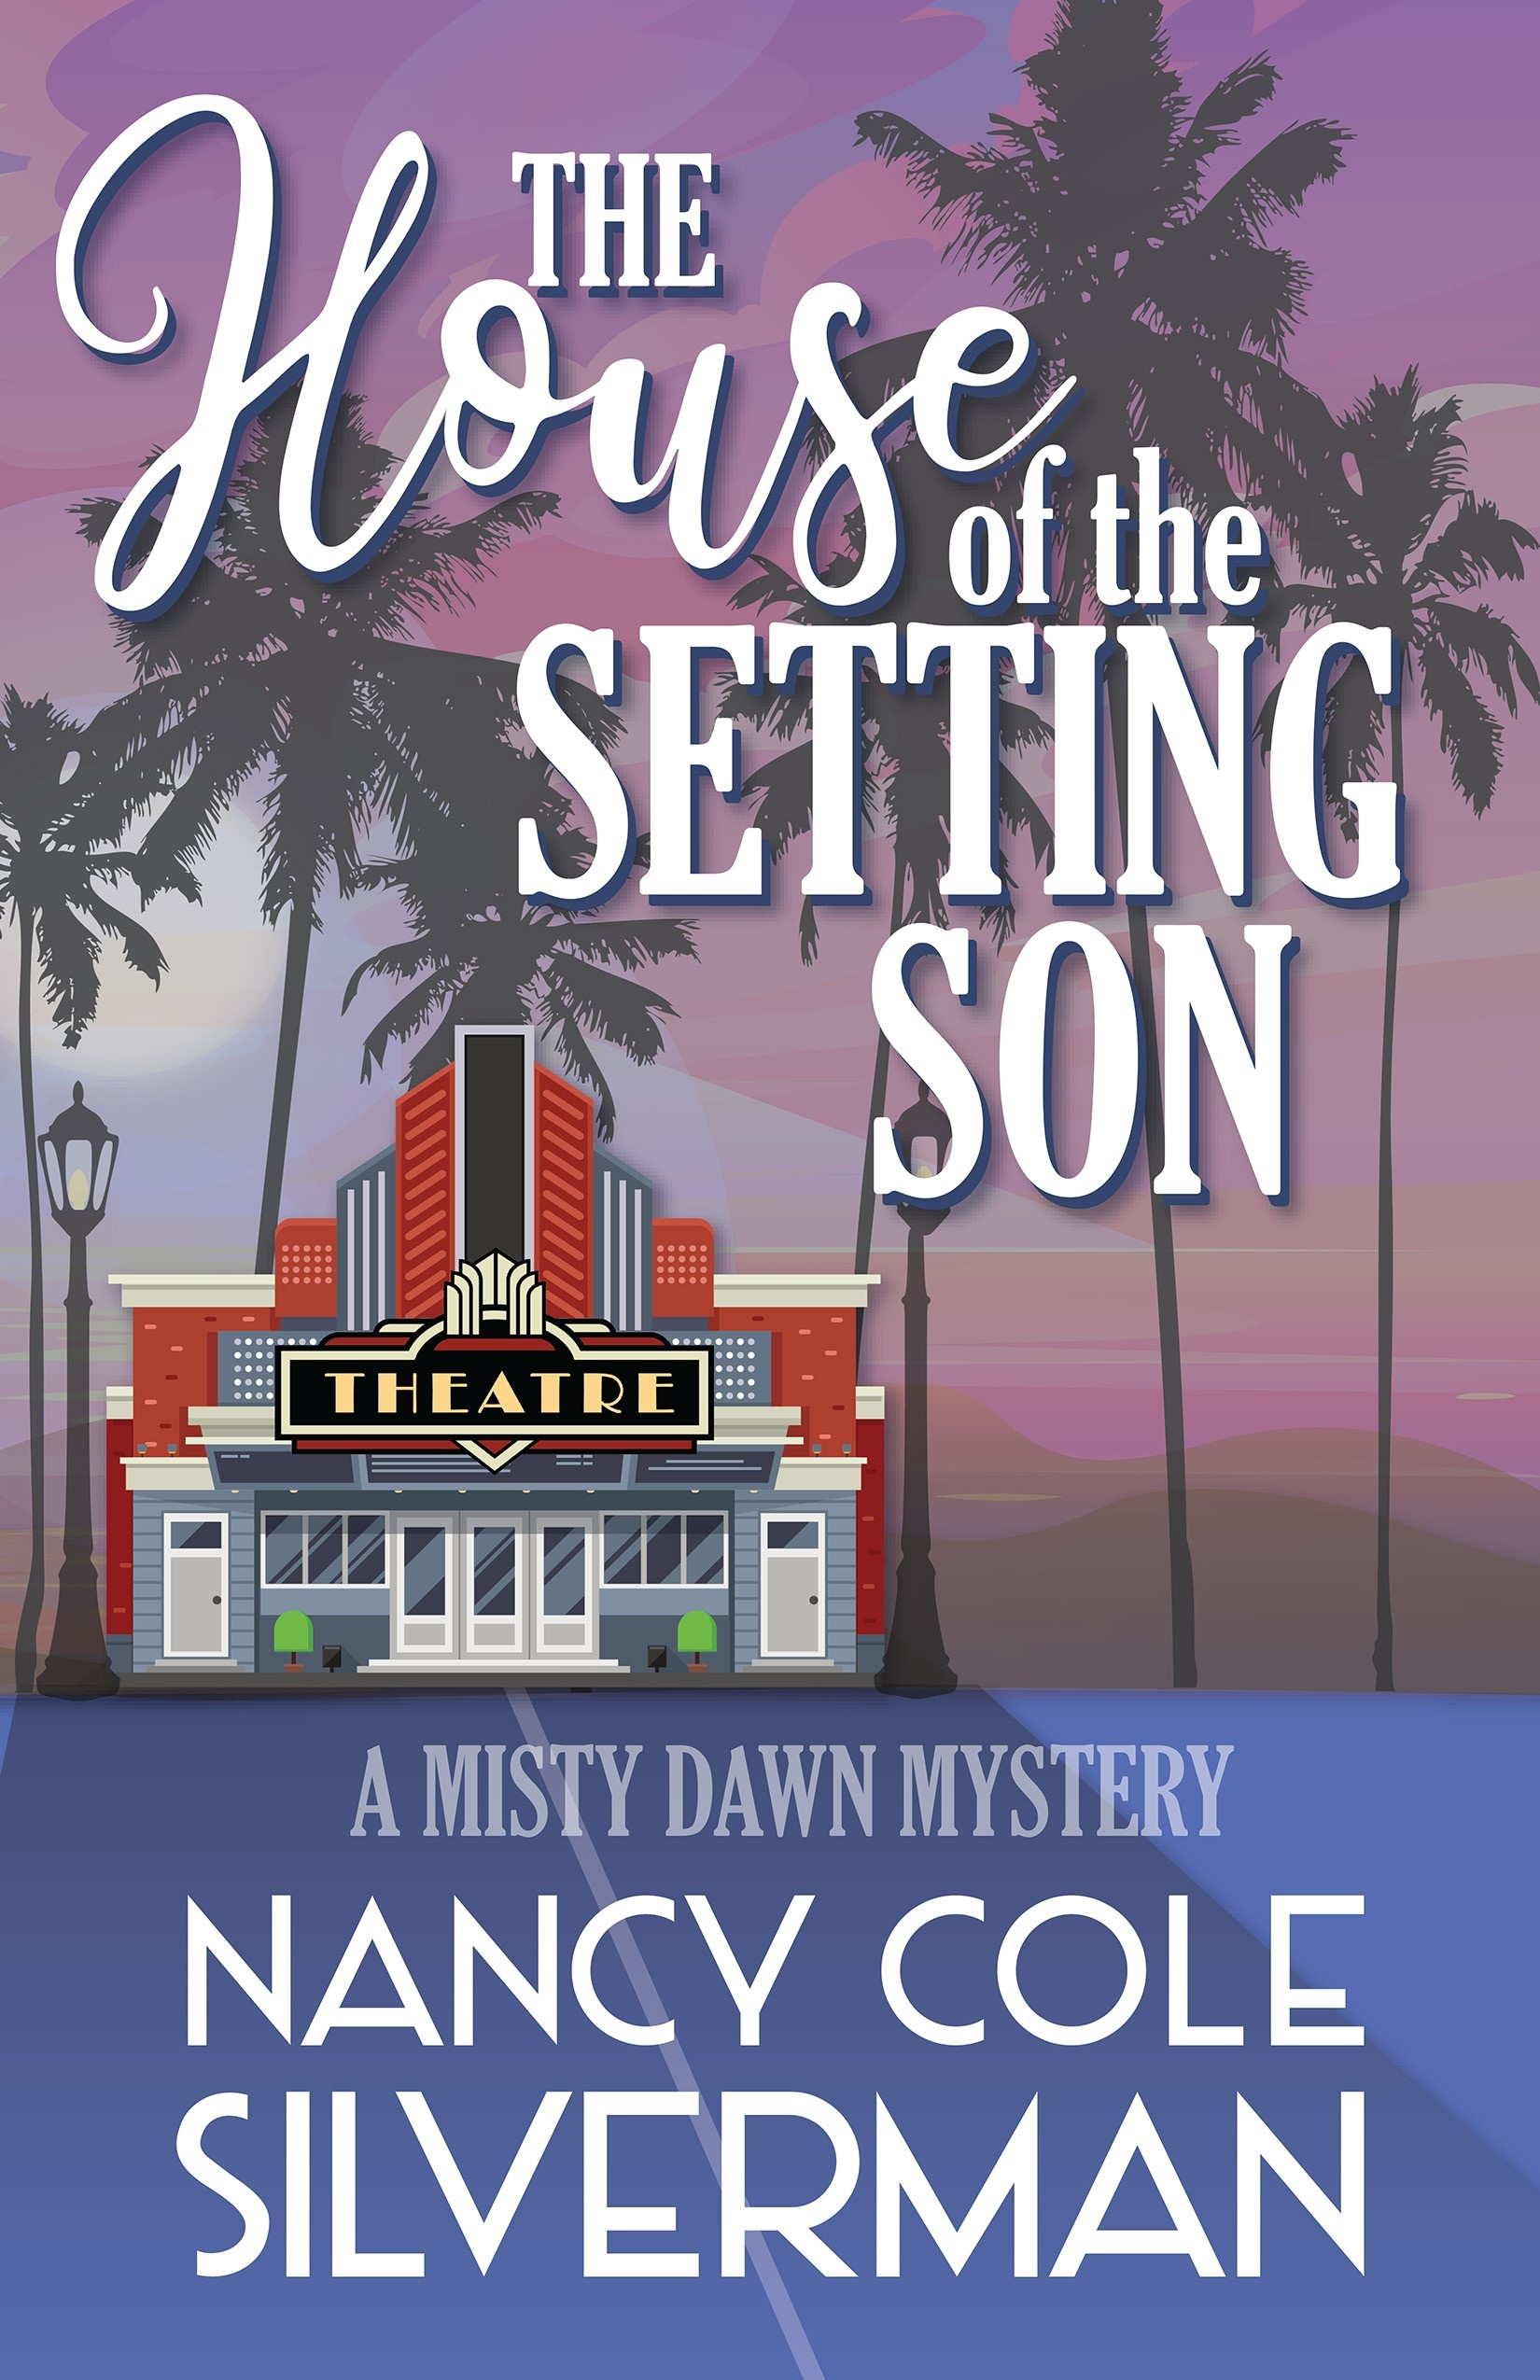 THE-HOUSE-OF-THE-SETTING-SON